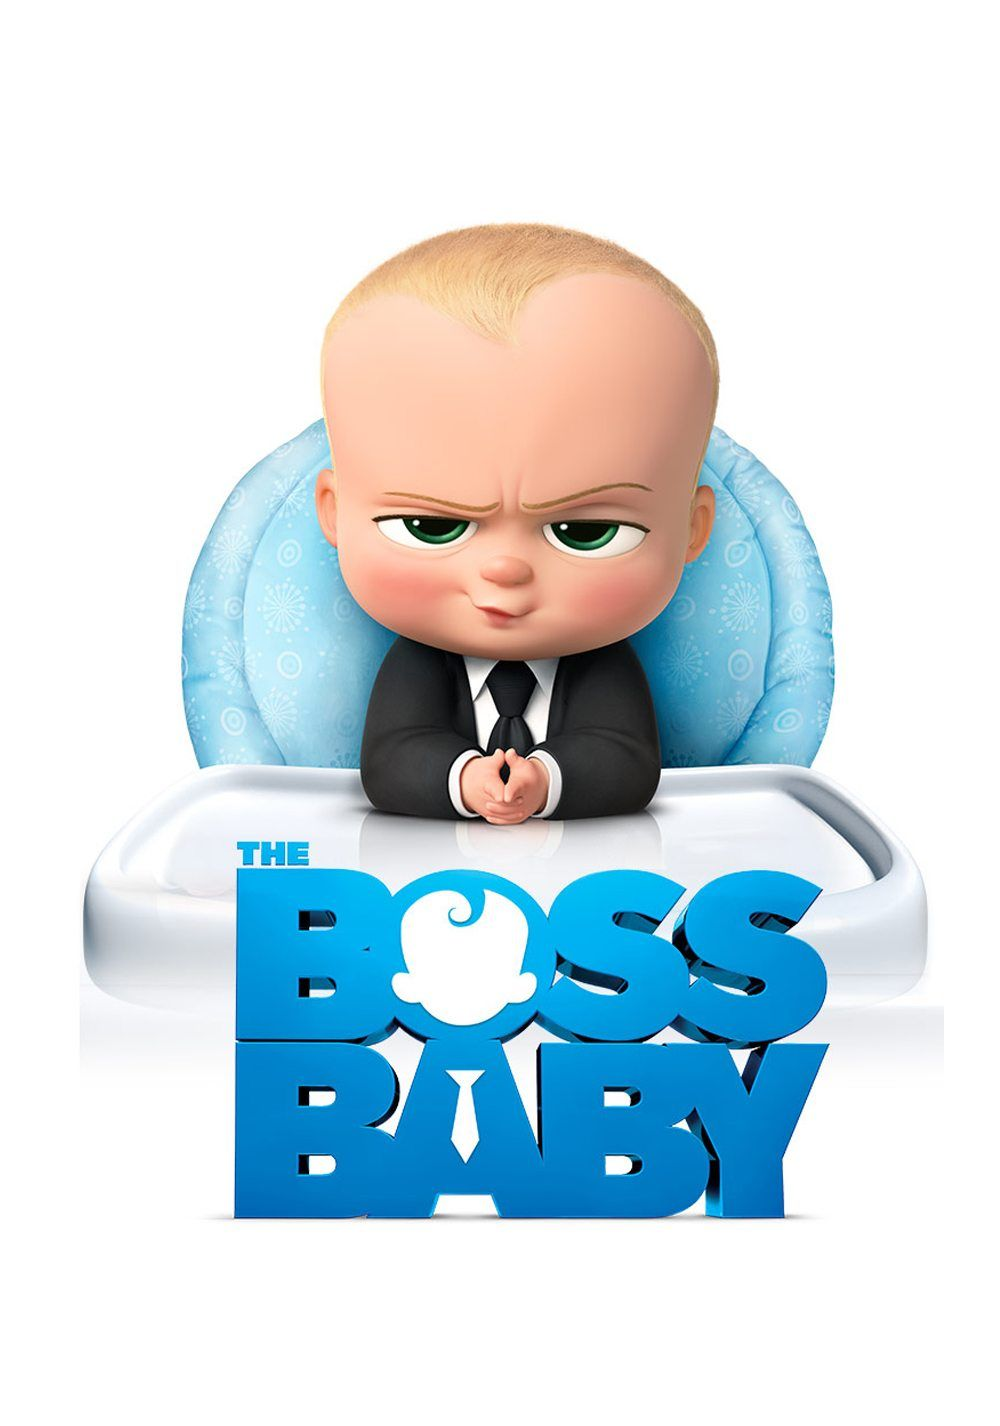 get latest full hd movies: the boss baby full hd movie download 2017